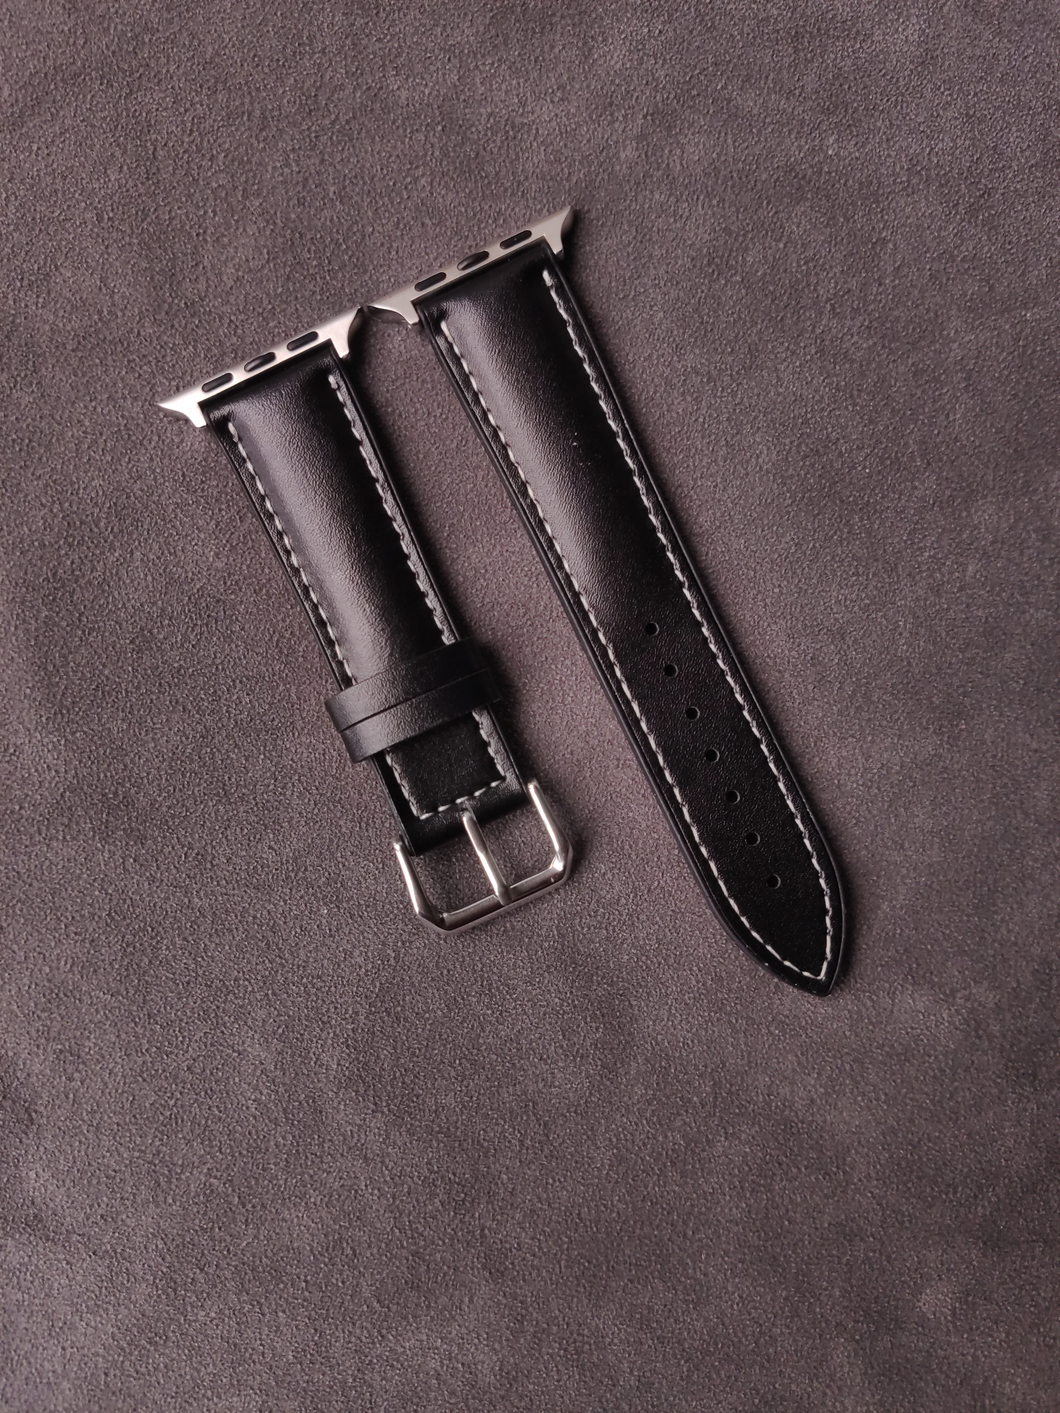 Genuine Black Calf Leather with Black Rubber base for Apple Strap